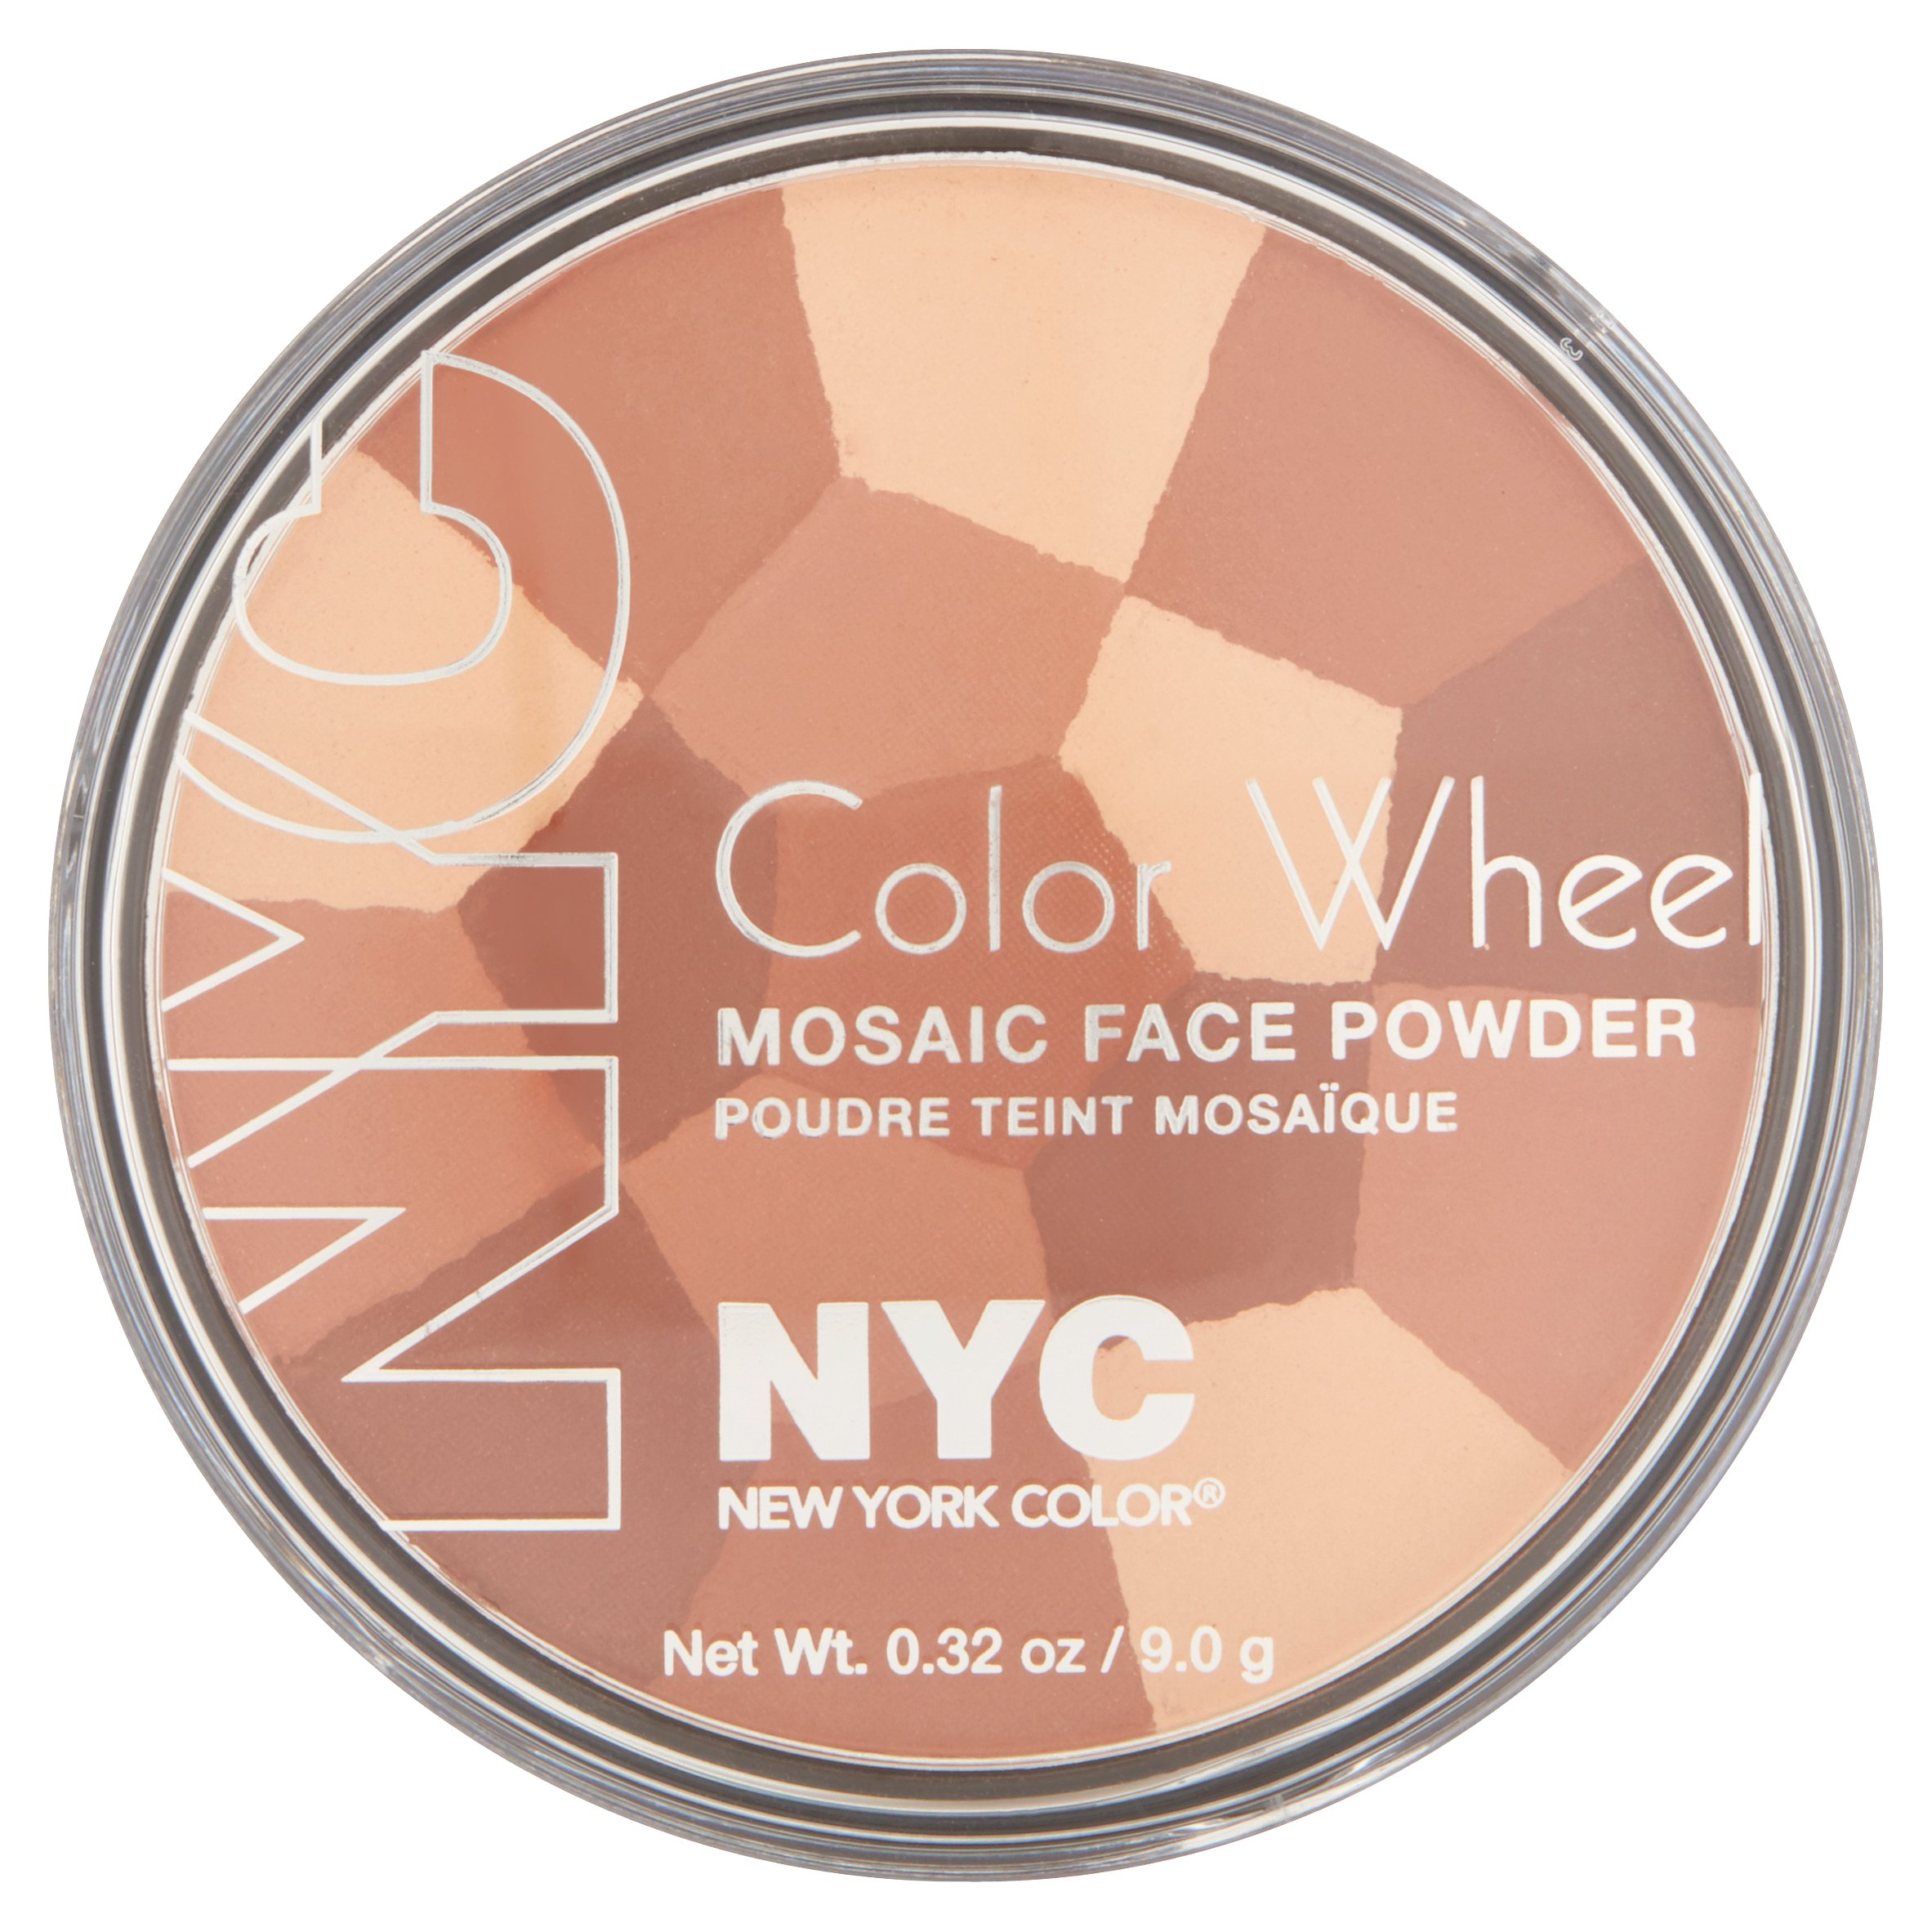 York Color Wheel Mosaic Face Powder, All Over Bronze Glow, 0.32 Ounce